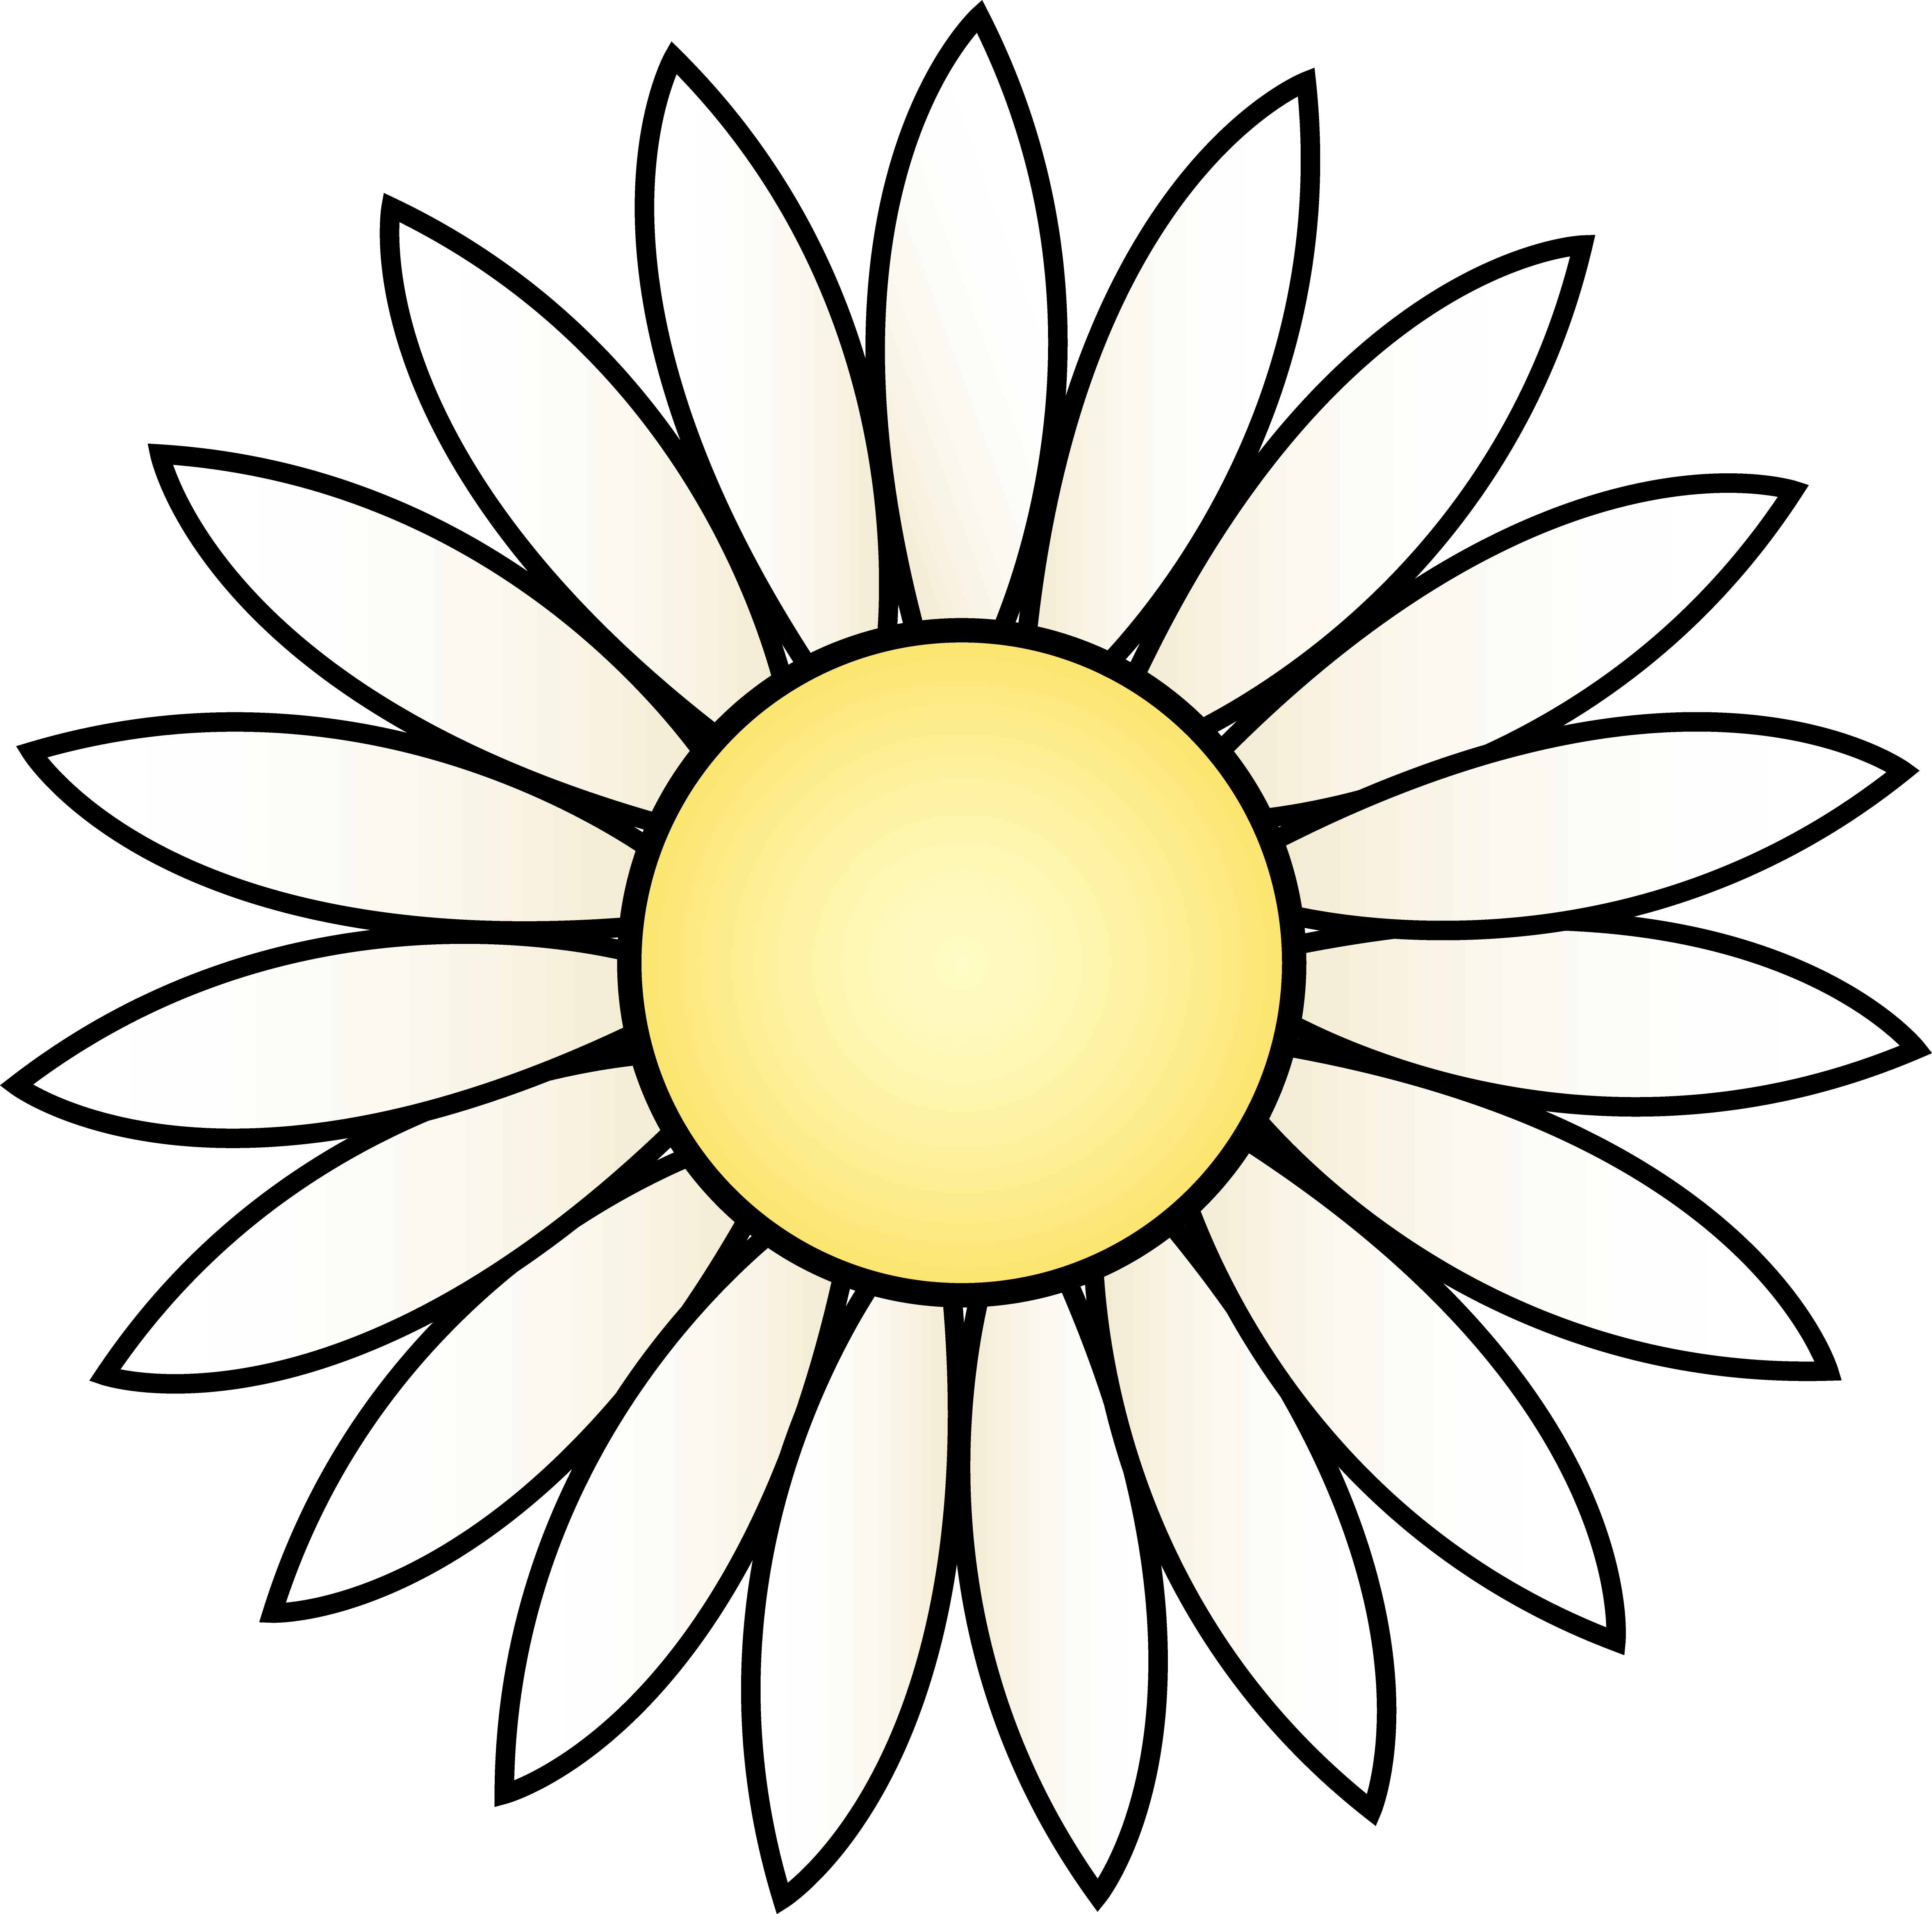 white daisy flower clip art depolama pinterest clip art rh pinterest co uk clip art daisies free clipart daily planners